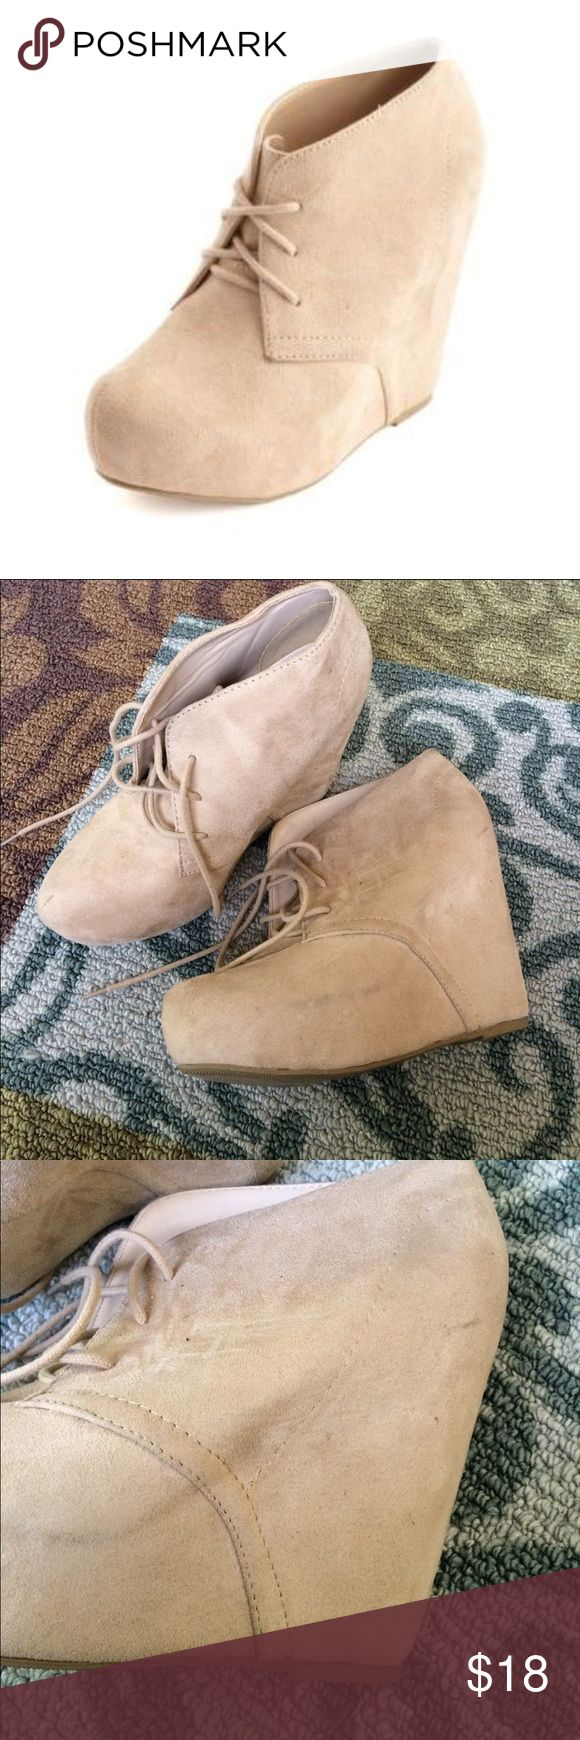 Charlotte Russe Tan Boot Wedge Tan Colored boot wedge. Very lightly worn. Only shows slight wear in bottoms. Inside are clean!! A few small marks from storage. Feel free to ask questions, I ship Same day!! Charlotte Russe Shoes Wedges